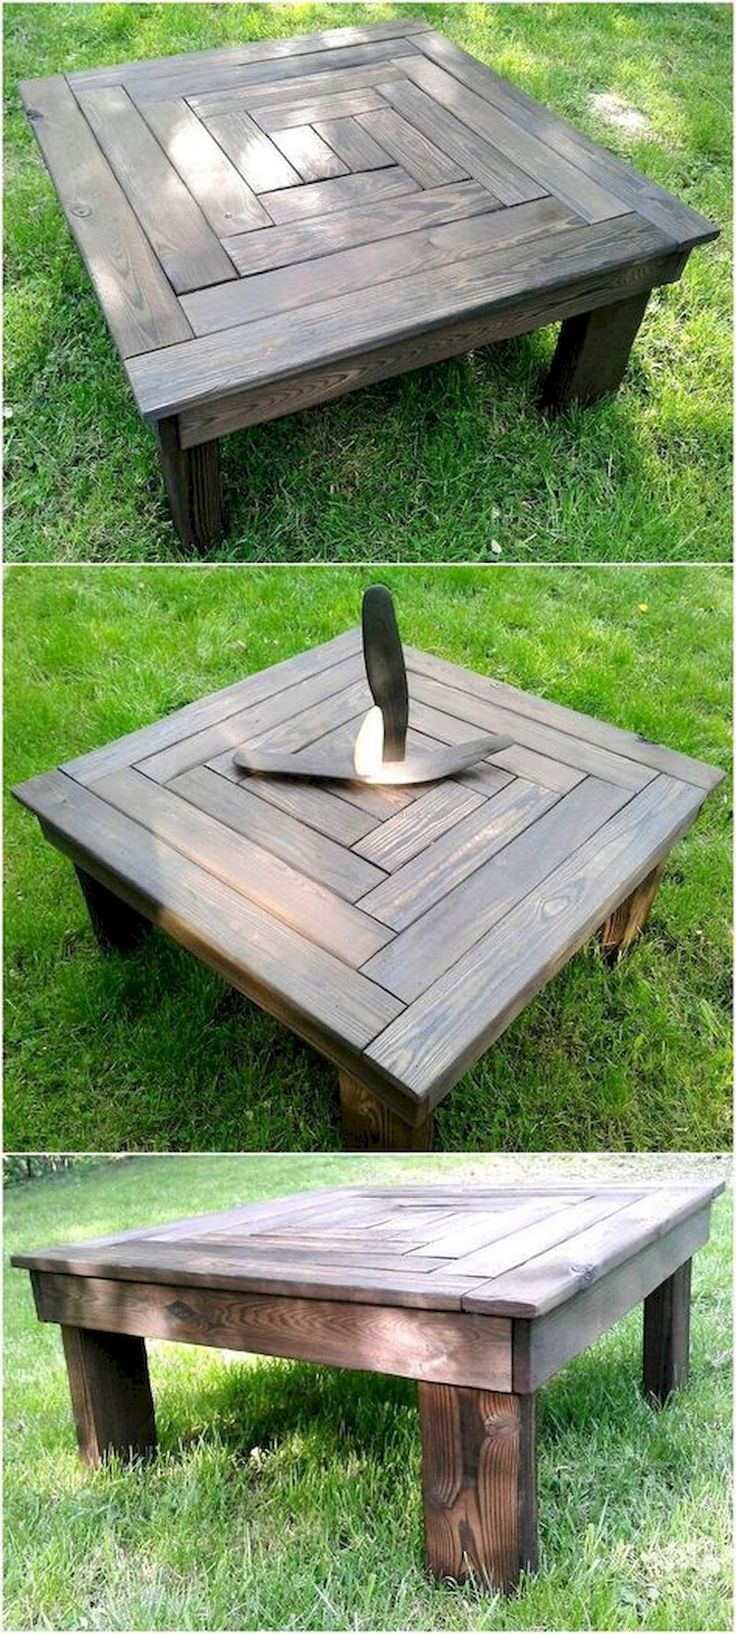 Outdoor school lunch table - Best 25 Rustic Outdoor Coffee Tables Ideas On Pinterest Industrial Style Coffee Table Eclectic Outdoor Side Tables And Eclectic Outdoor Coffee Tables